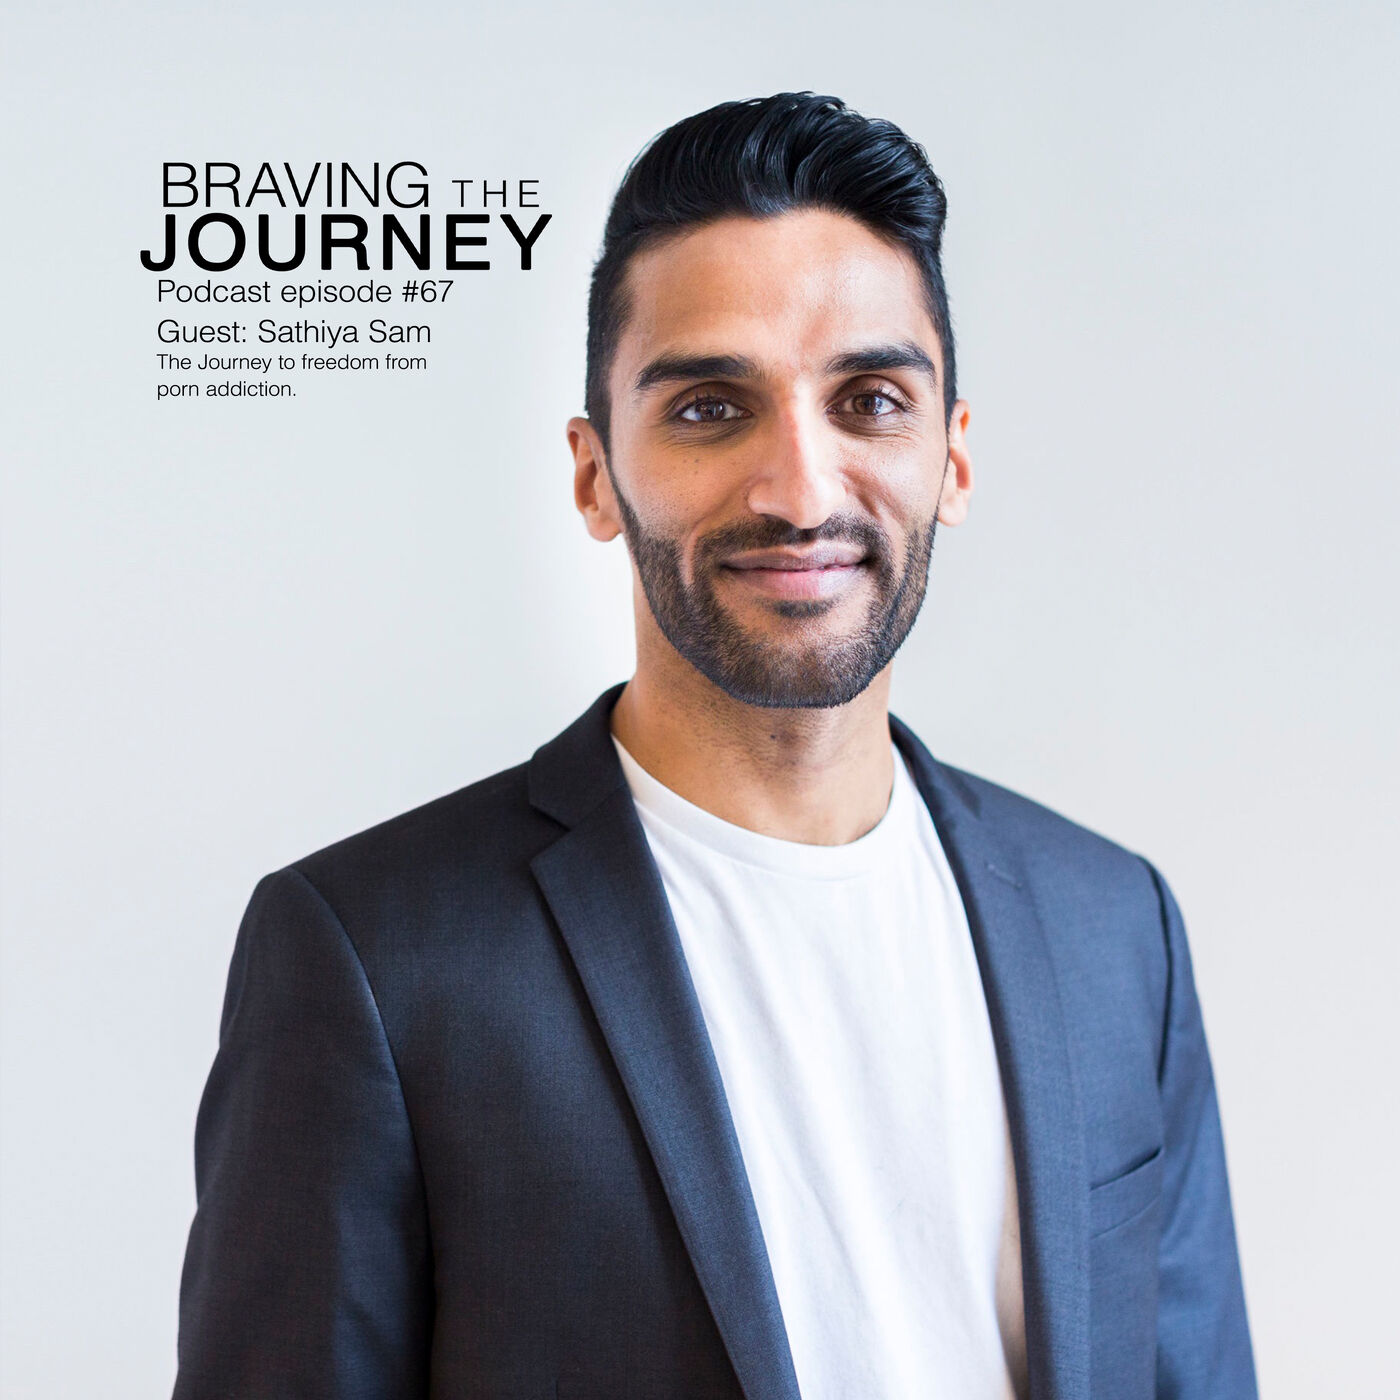 The Journey to freedom from addiction with Sathiya Sam